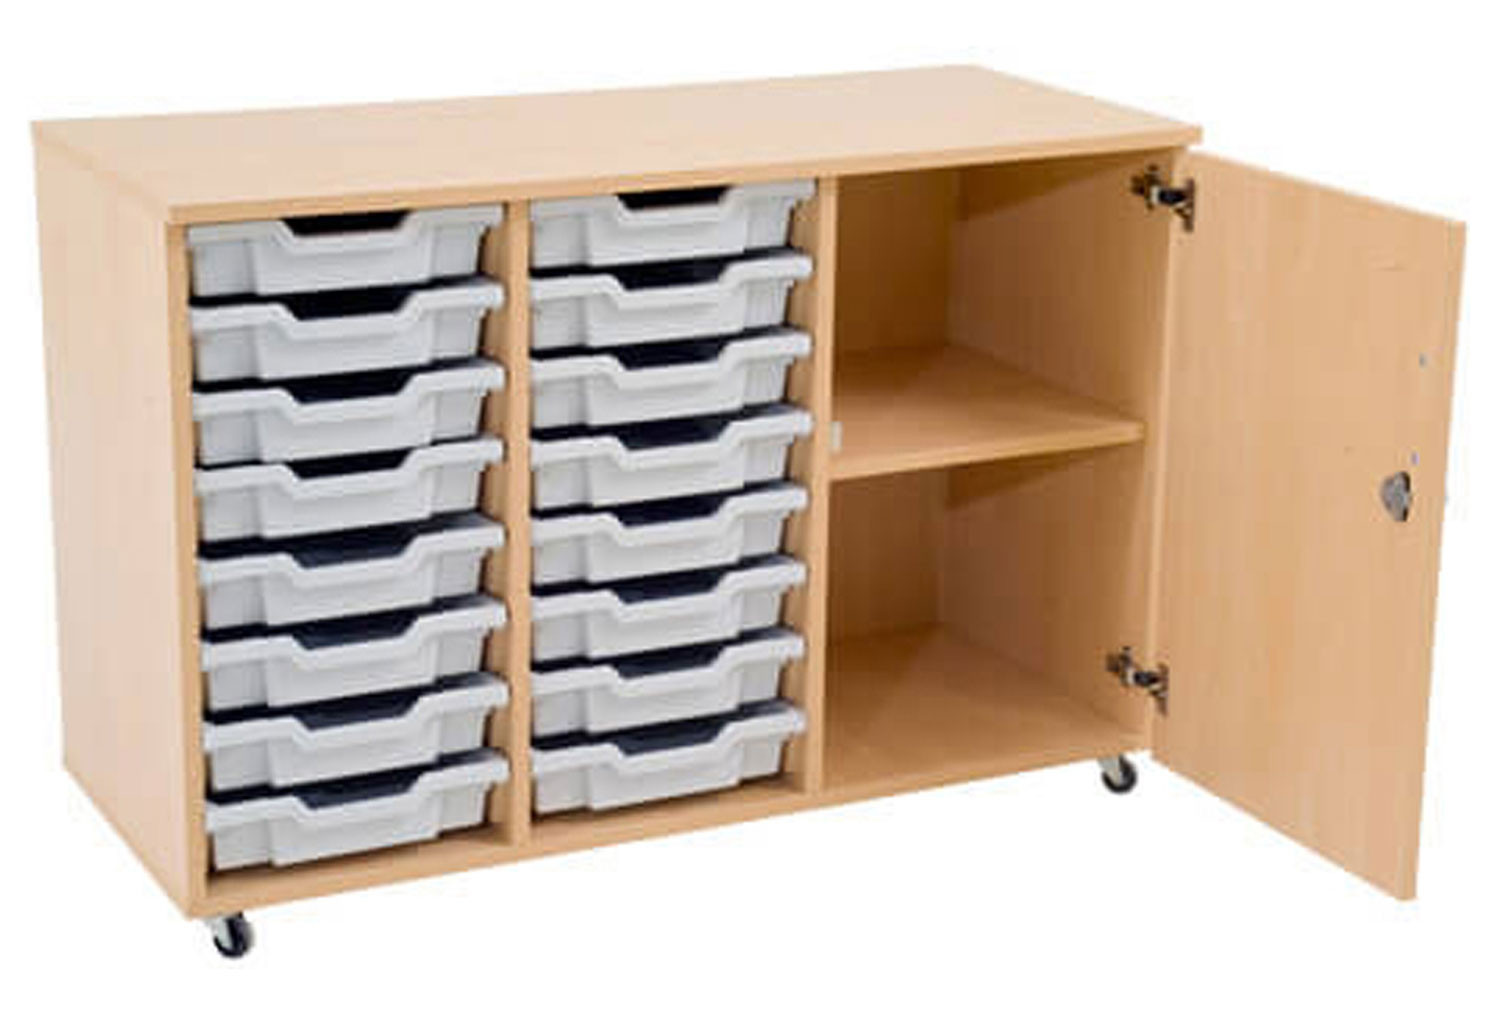 Mobile storage unit with 1 shelf and 16 shallow Gratnells trays